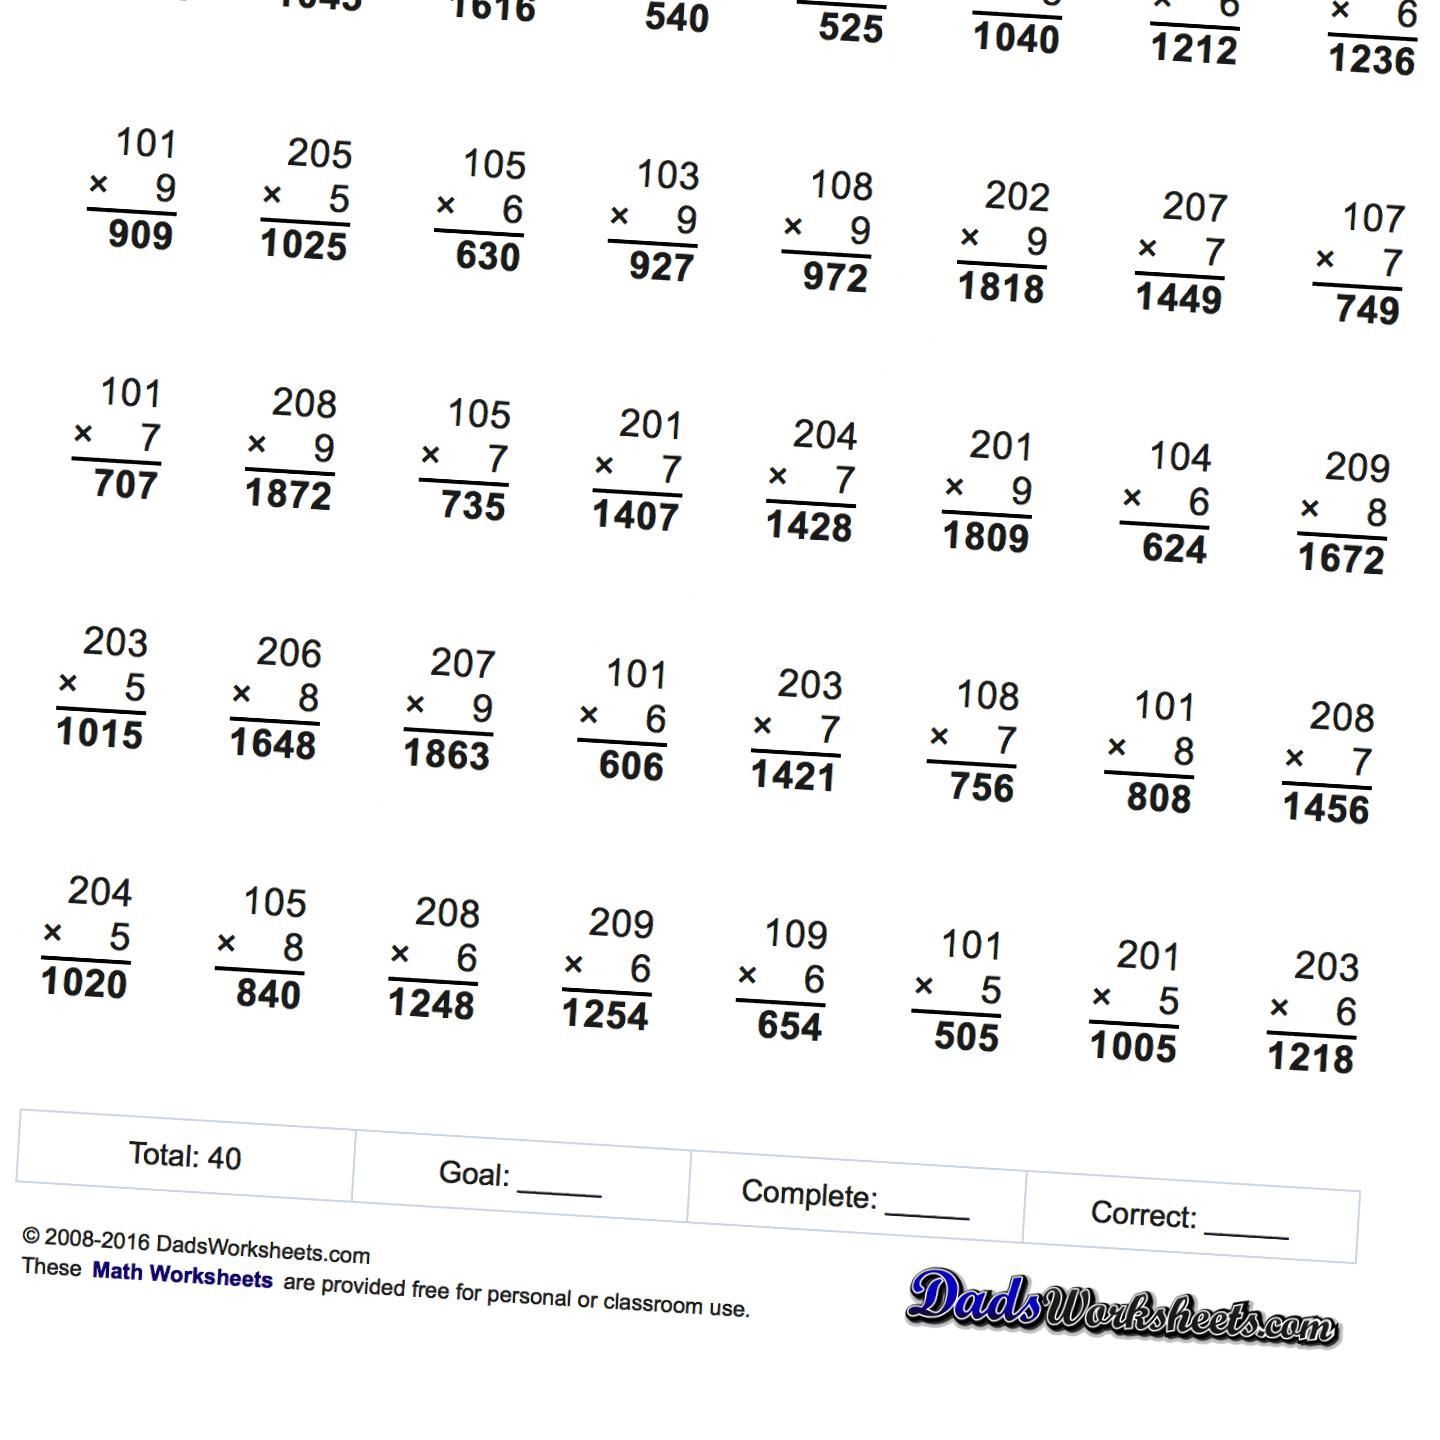 Multiplication Worksheets With Zeroes In The Tens Place